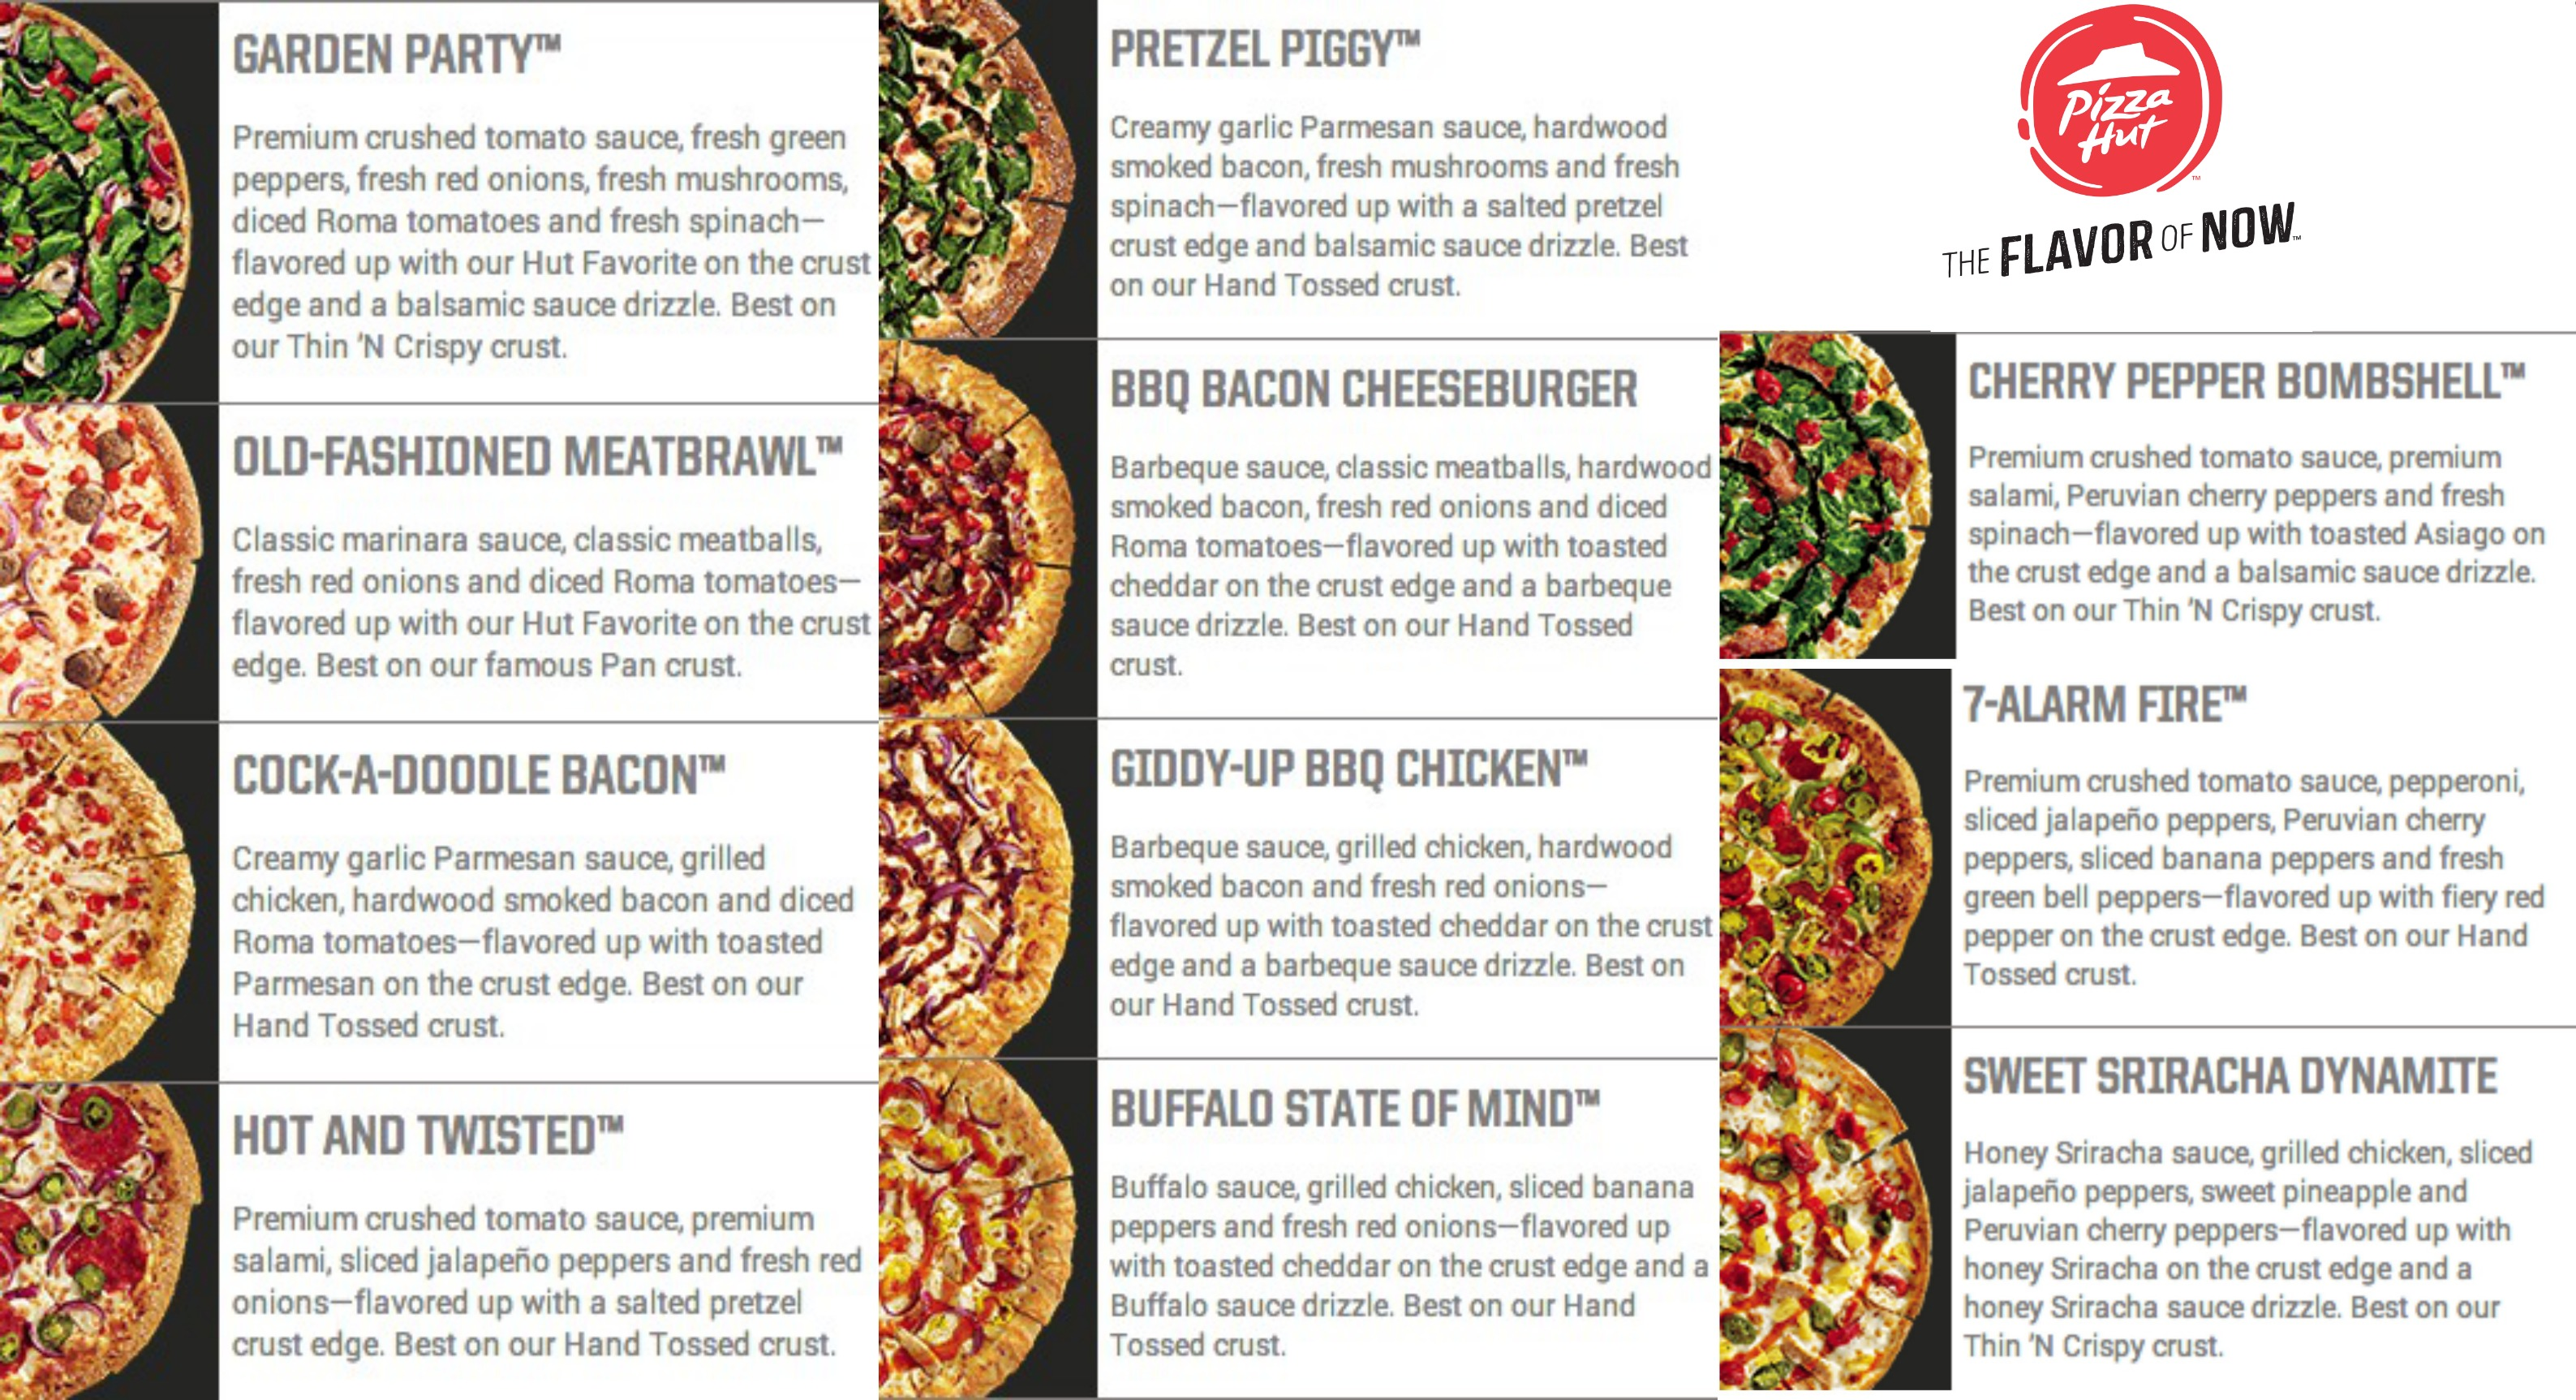 """Also, please note that the Pizza Hut menu this year includes 10 new crust flavors, five new """"premium"""" ingredients, four new sauce """"drizzles"""", six sauces, a new thin curst pizza called """"skinny"""" pizzas and 11 new pizza recipes, including the Sweet Sriracha Dynamite, Giddy-Up BBQ Chicken, Garden Party, Buffalo State of Mind and the Pretzel Piggy Pizza."""